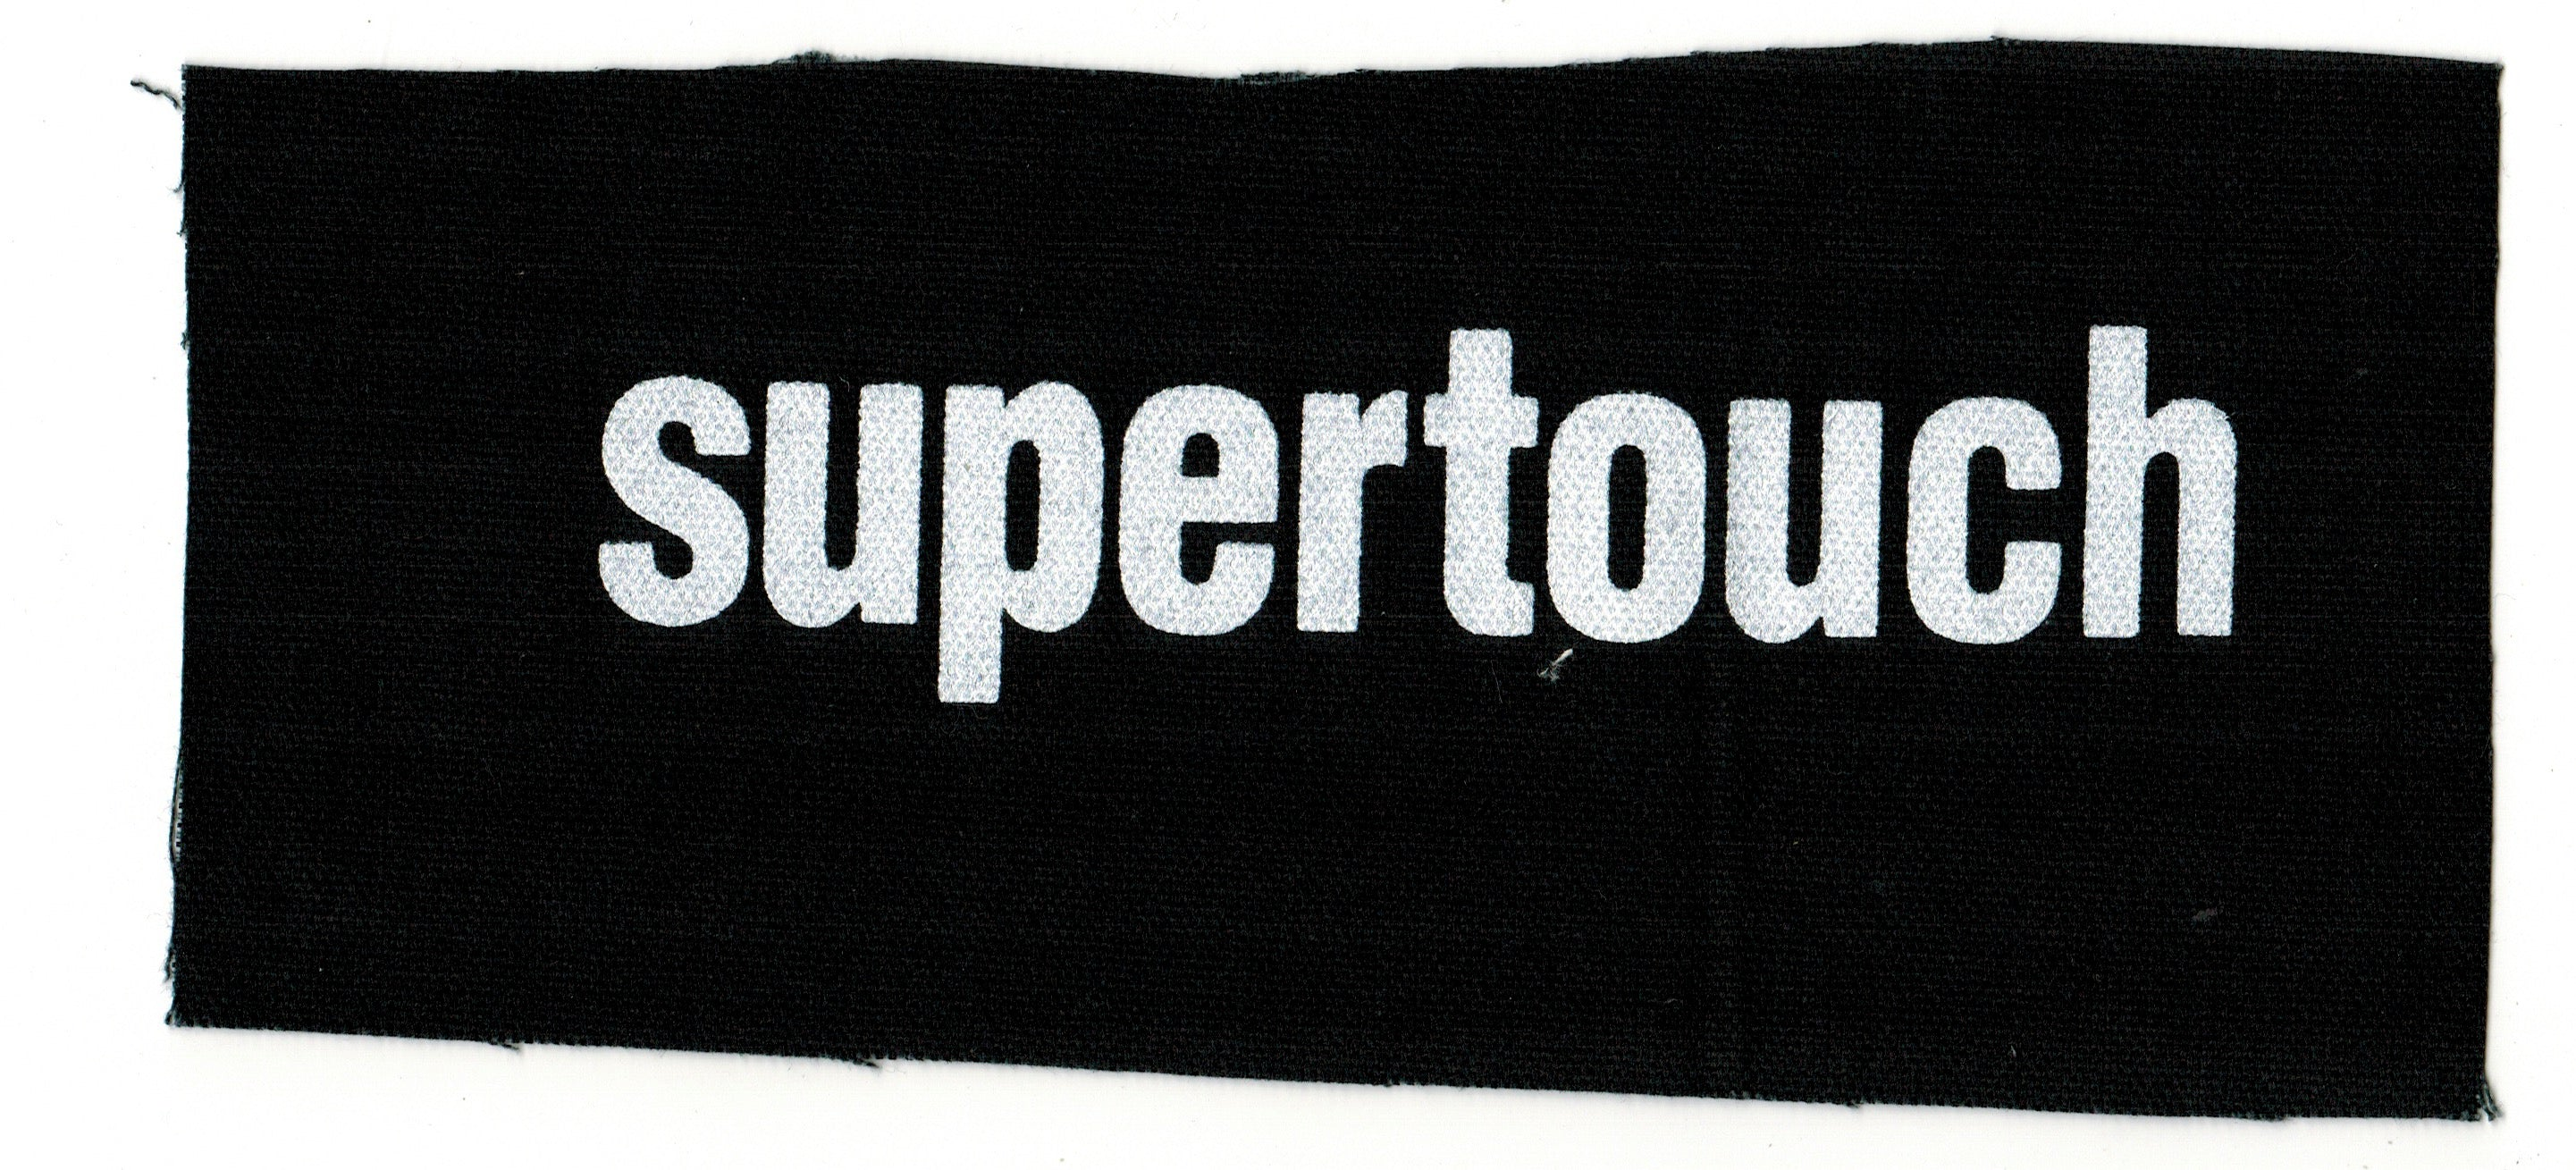 SUPERTOUCH 'black' Screenprinted Patch